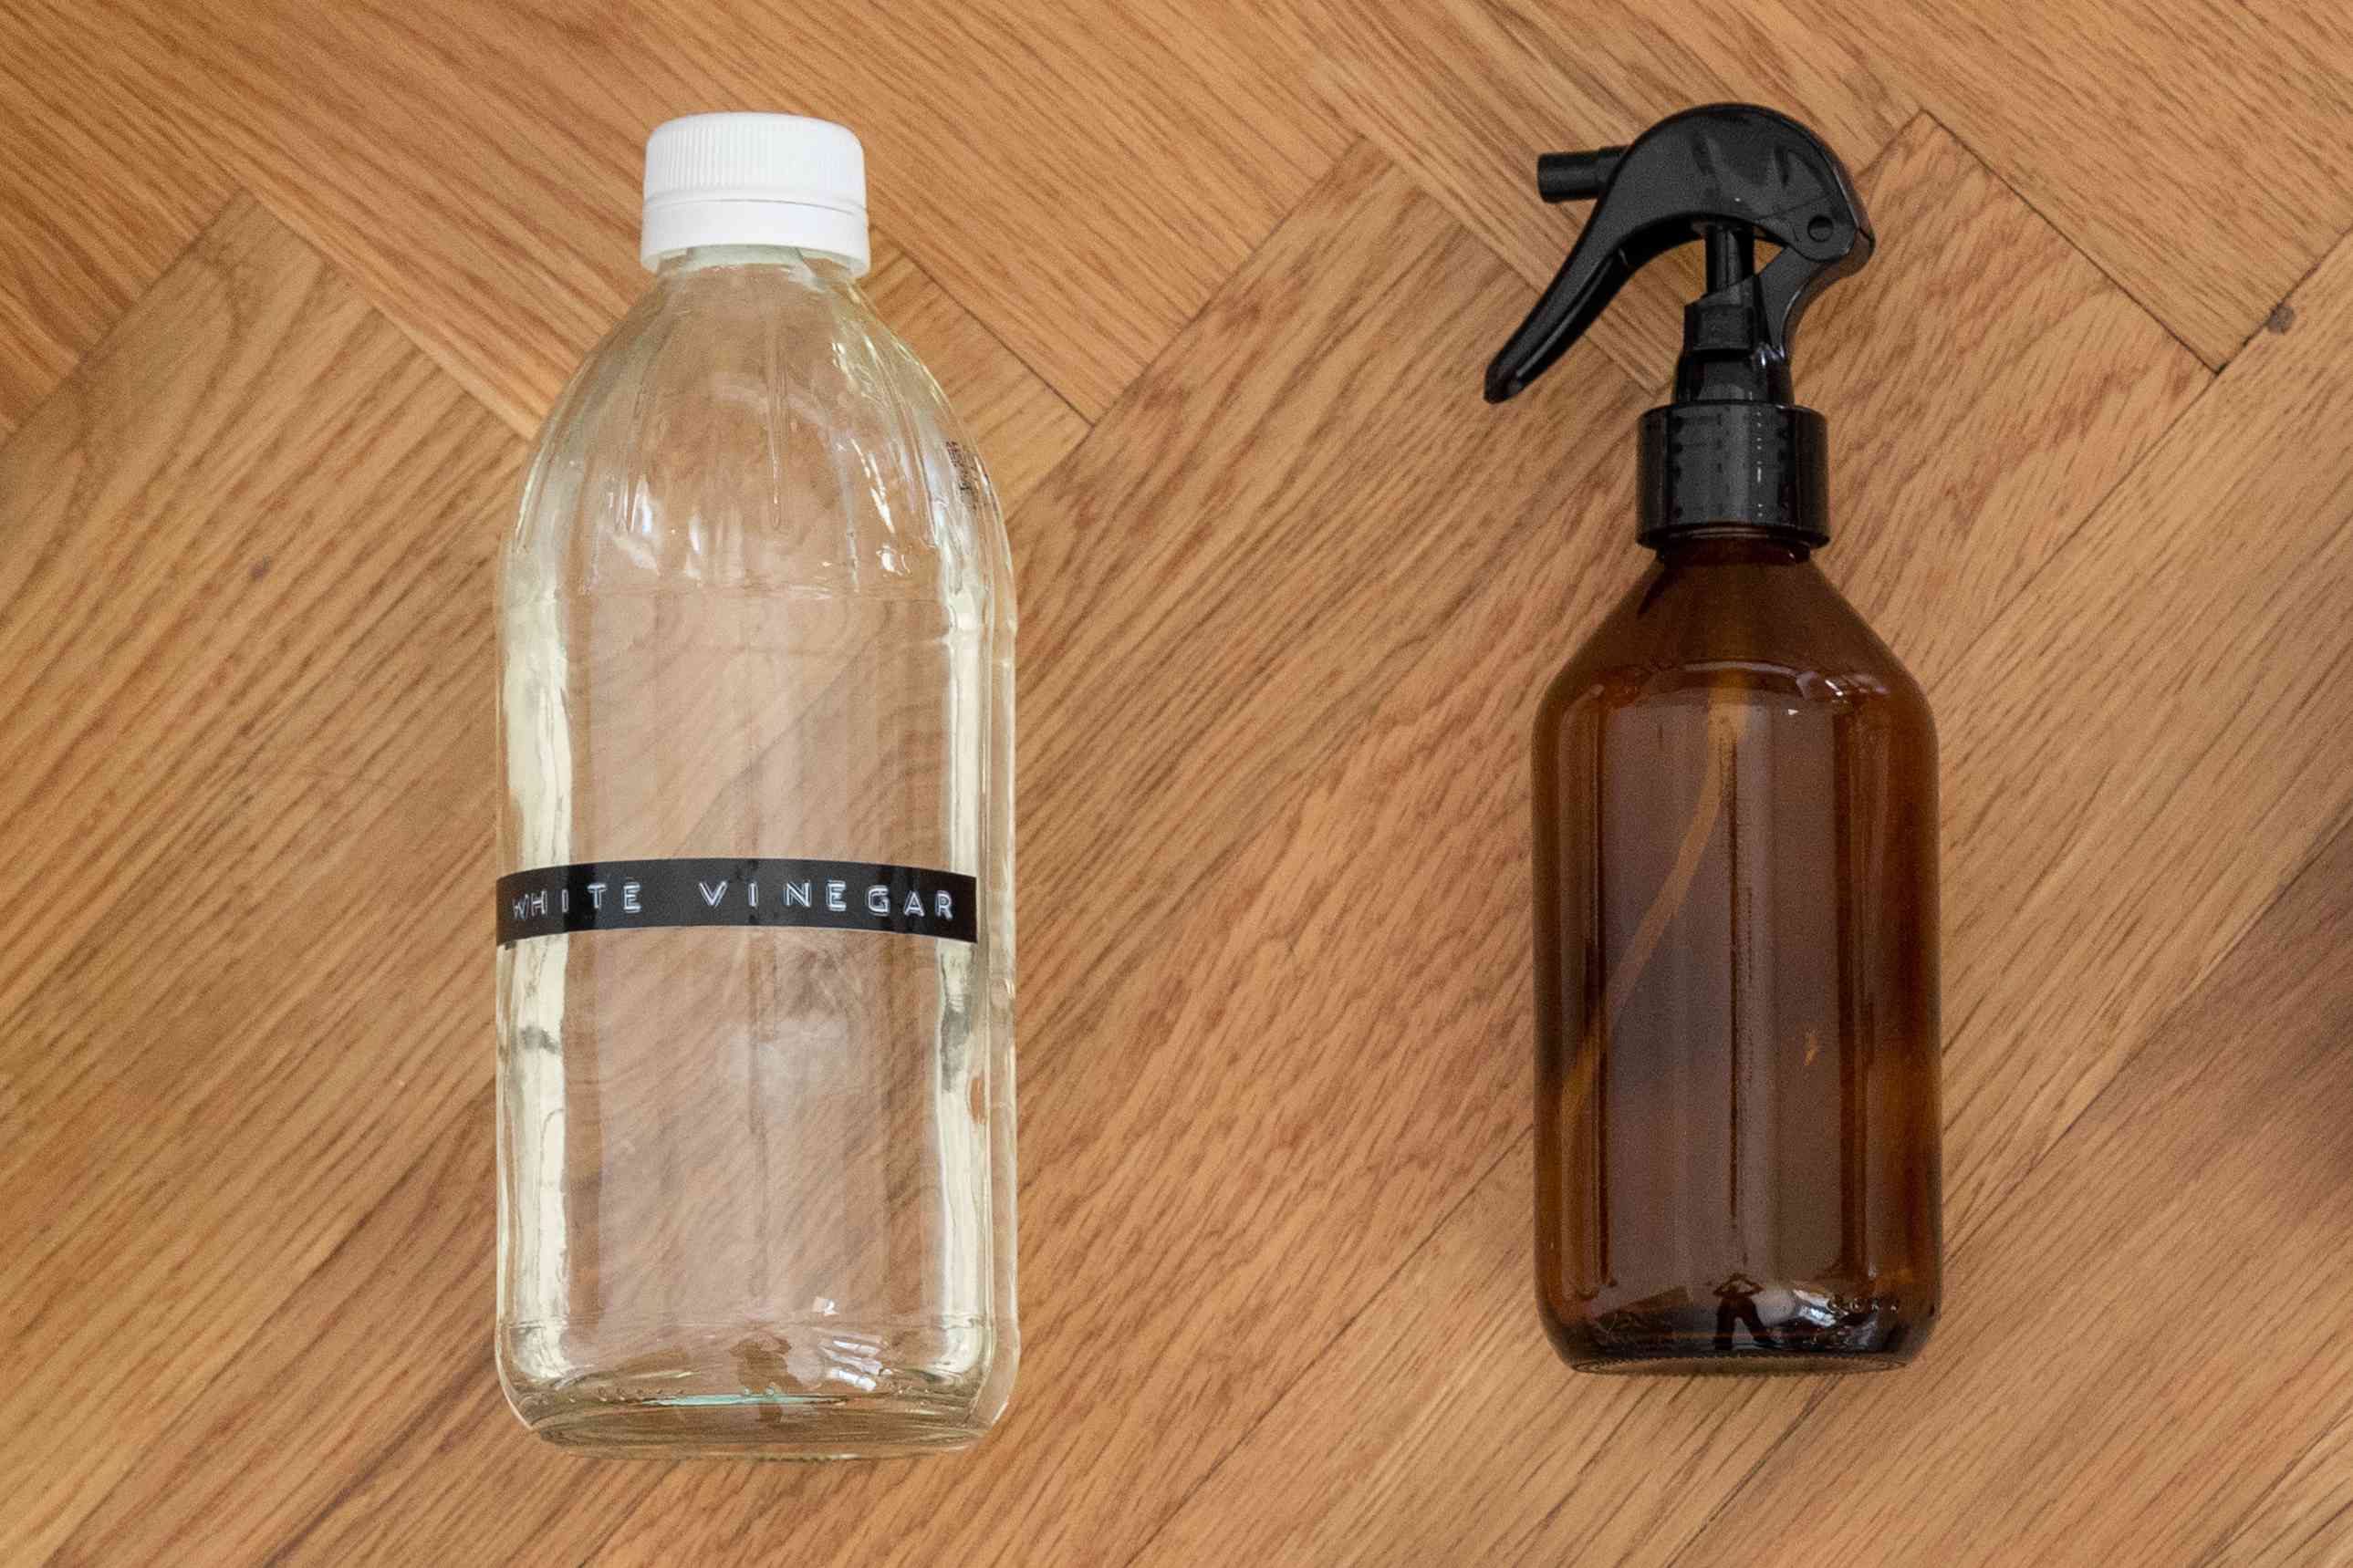 Mixing a 50/50 vinegar and water solution in a spray bottle